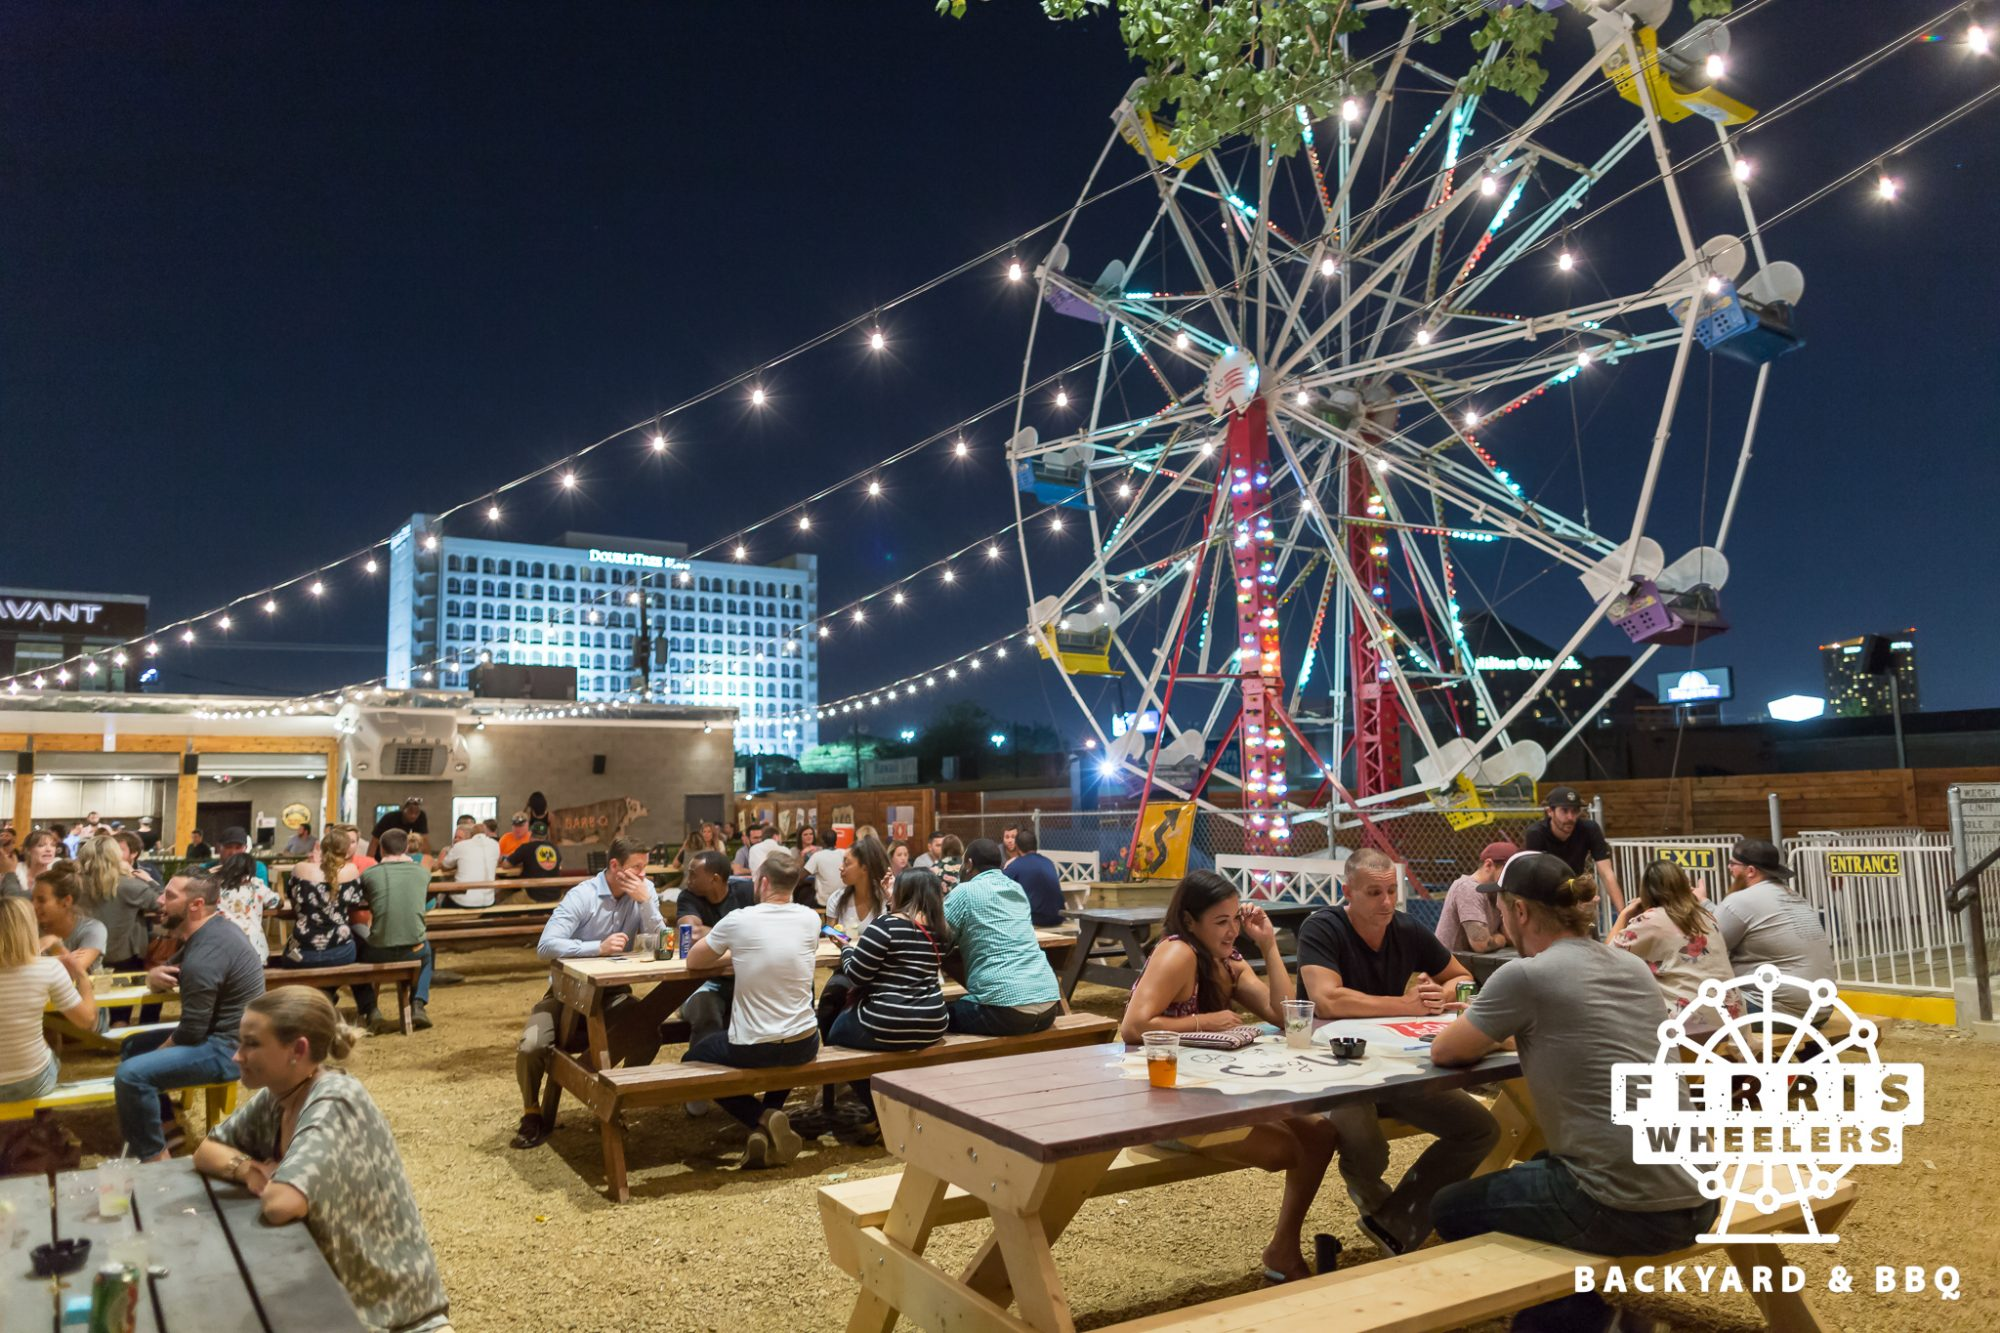 This BBQ Restaurant Has a 50-Foot Ferris Wheel Out Back